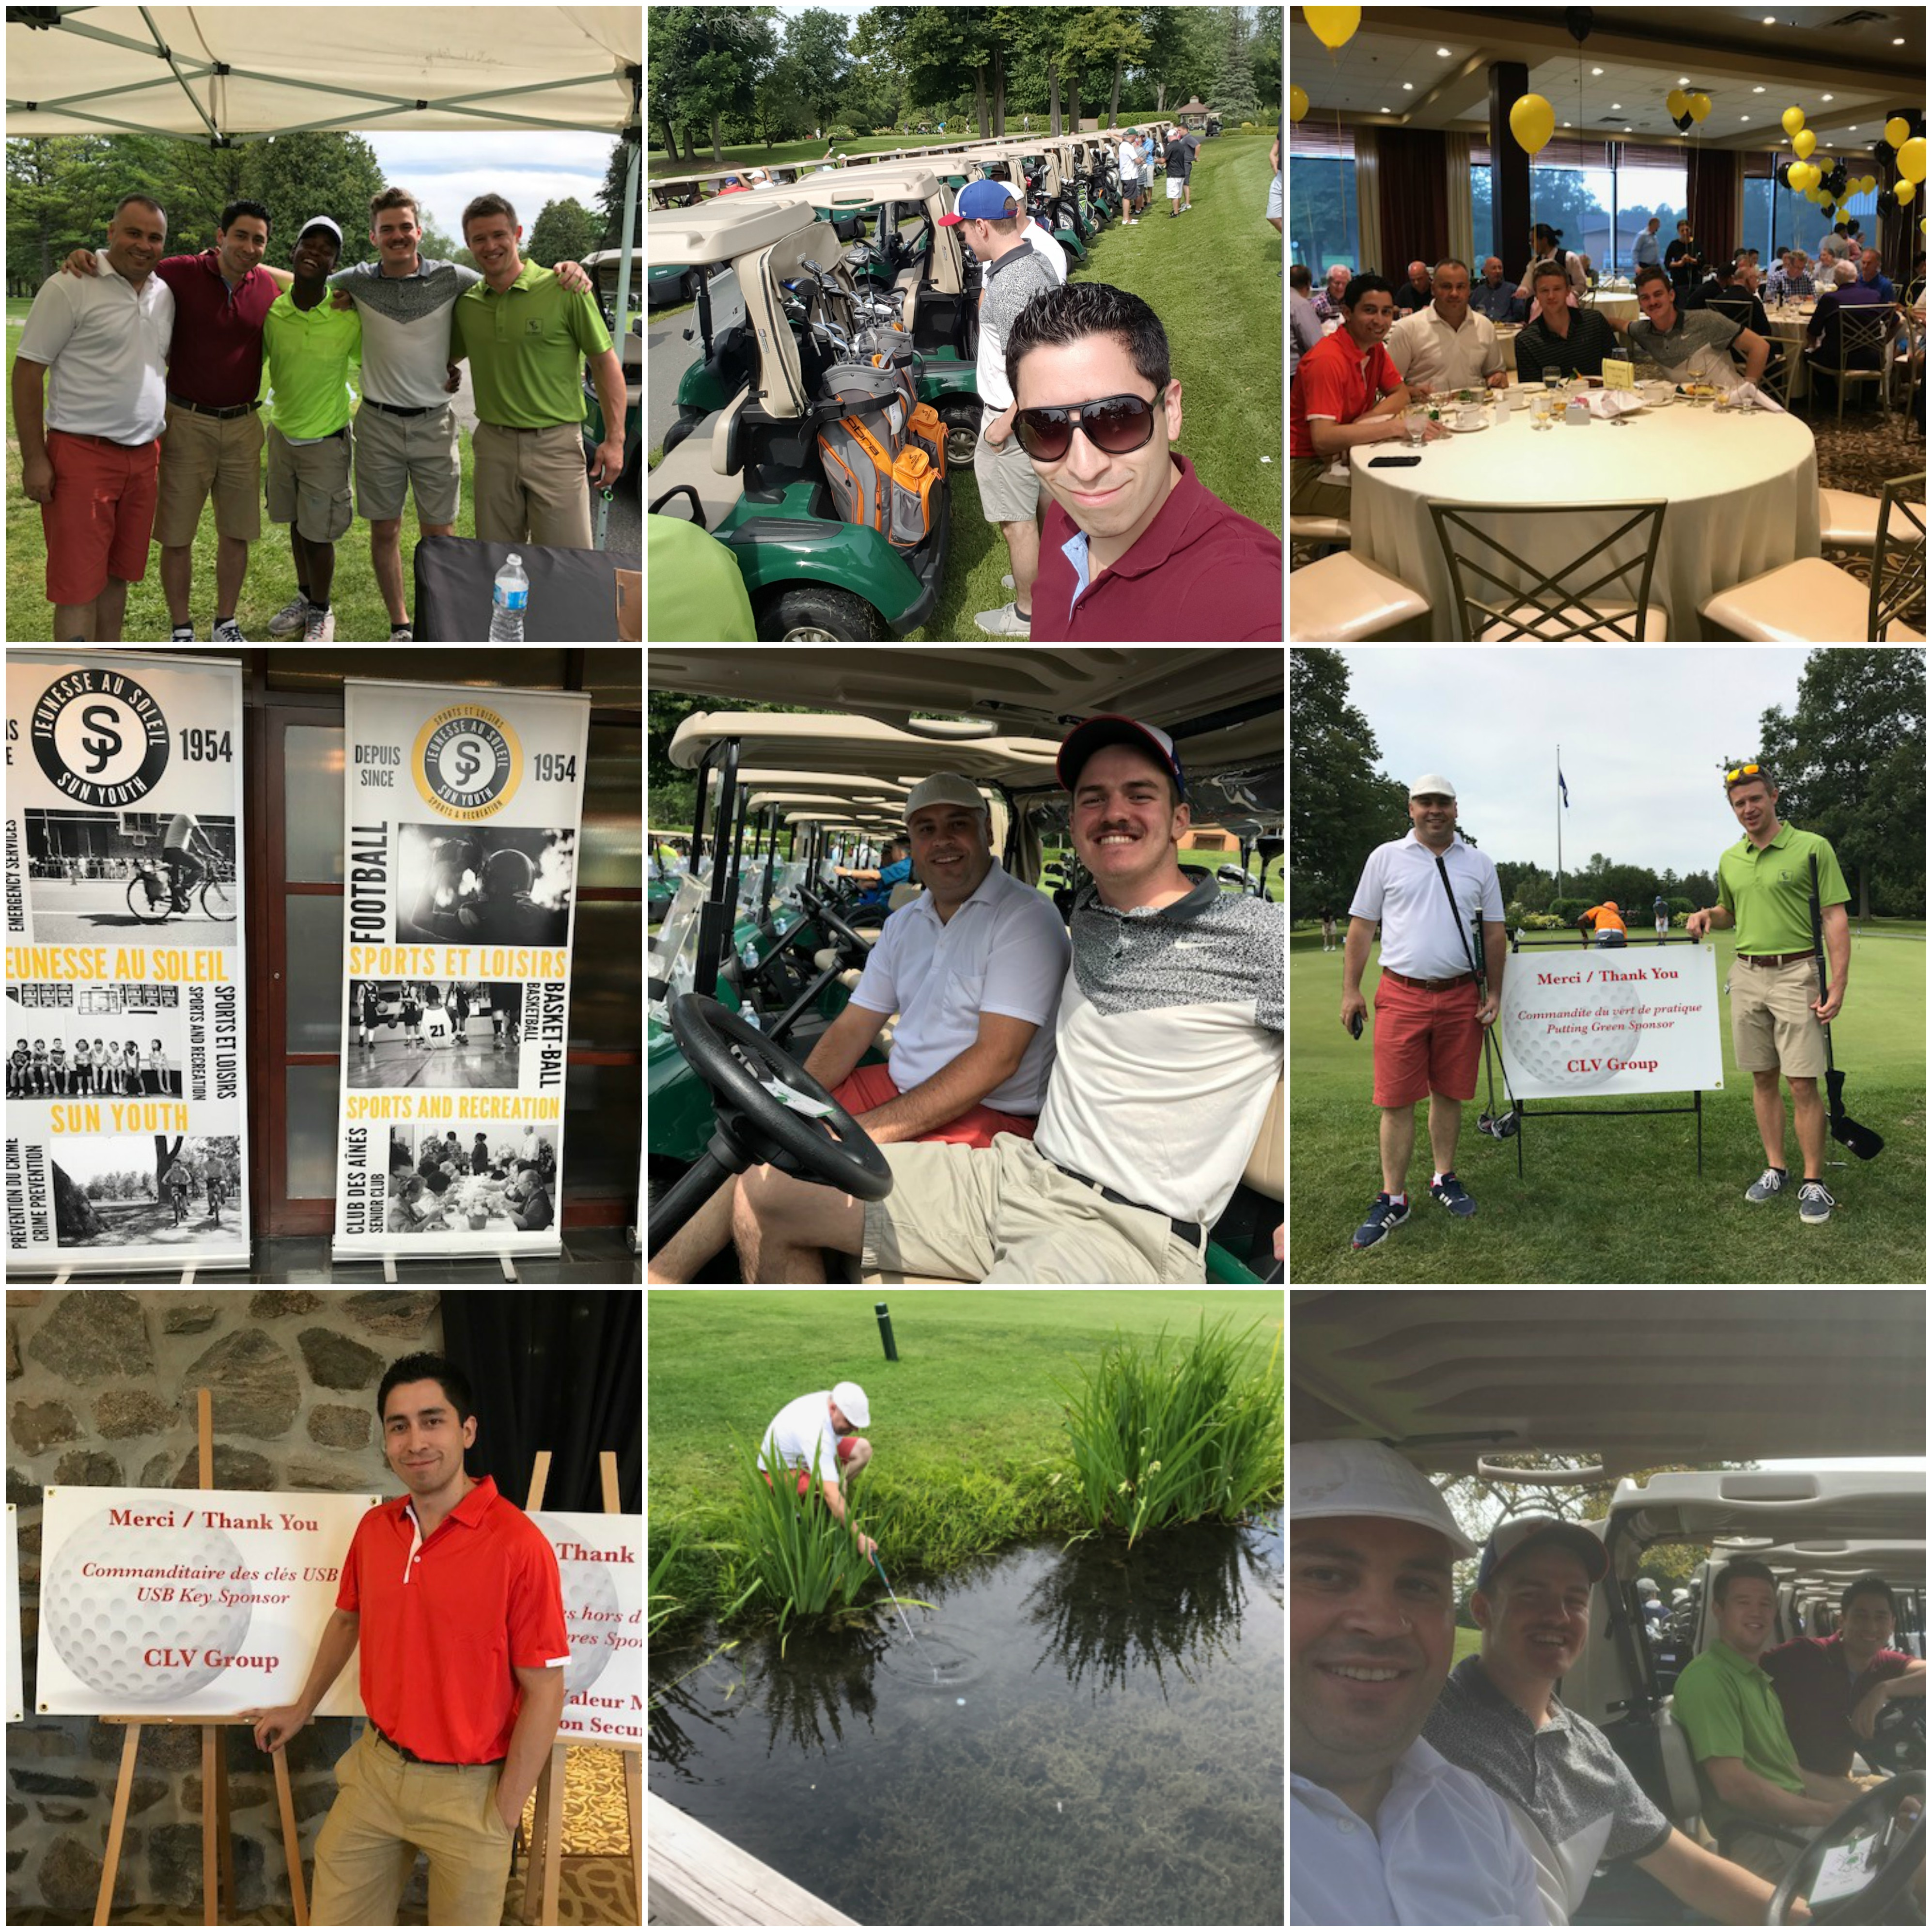 sun-youth-golf-tournament-montreal-photos